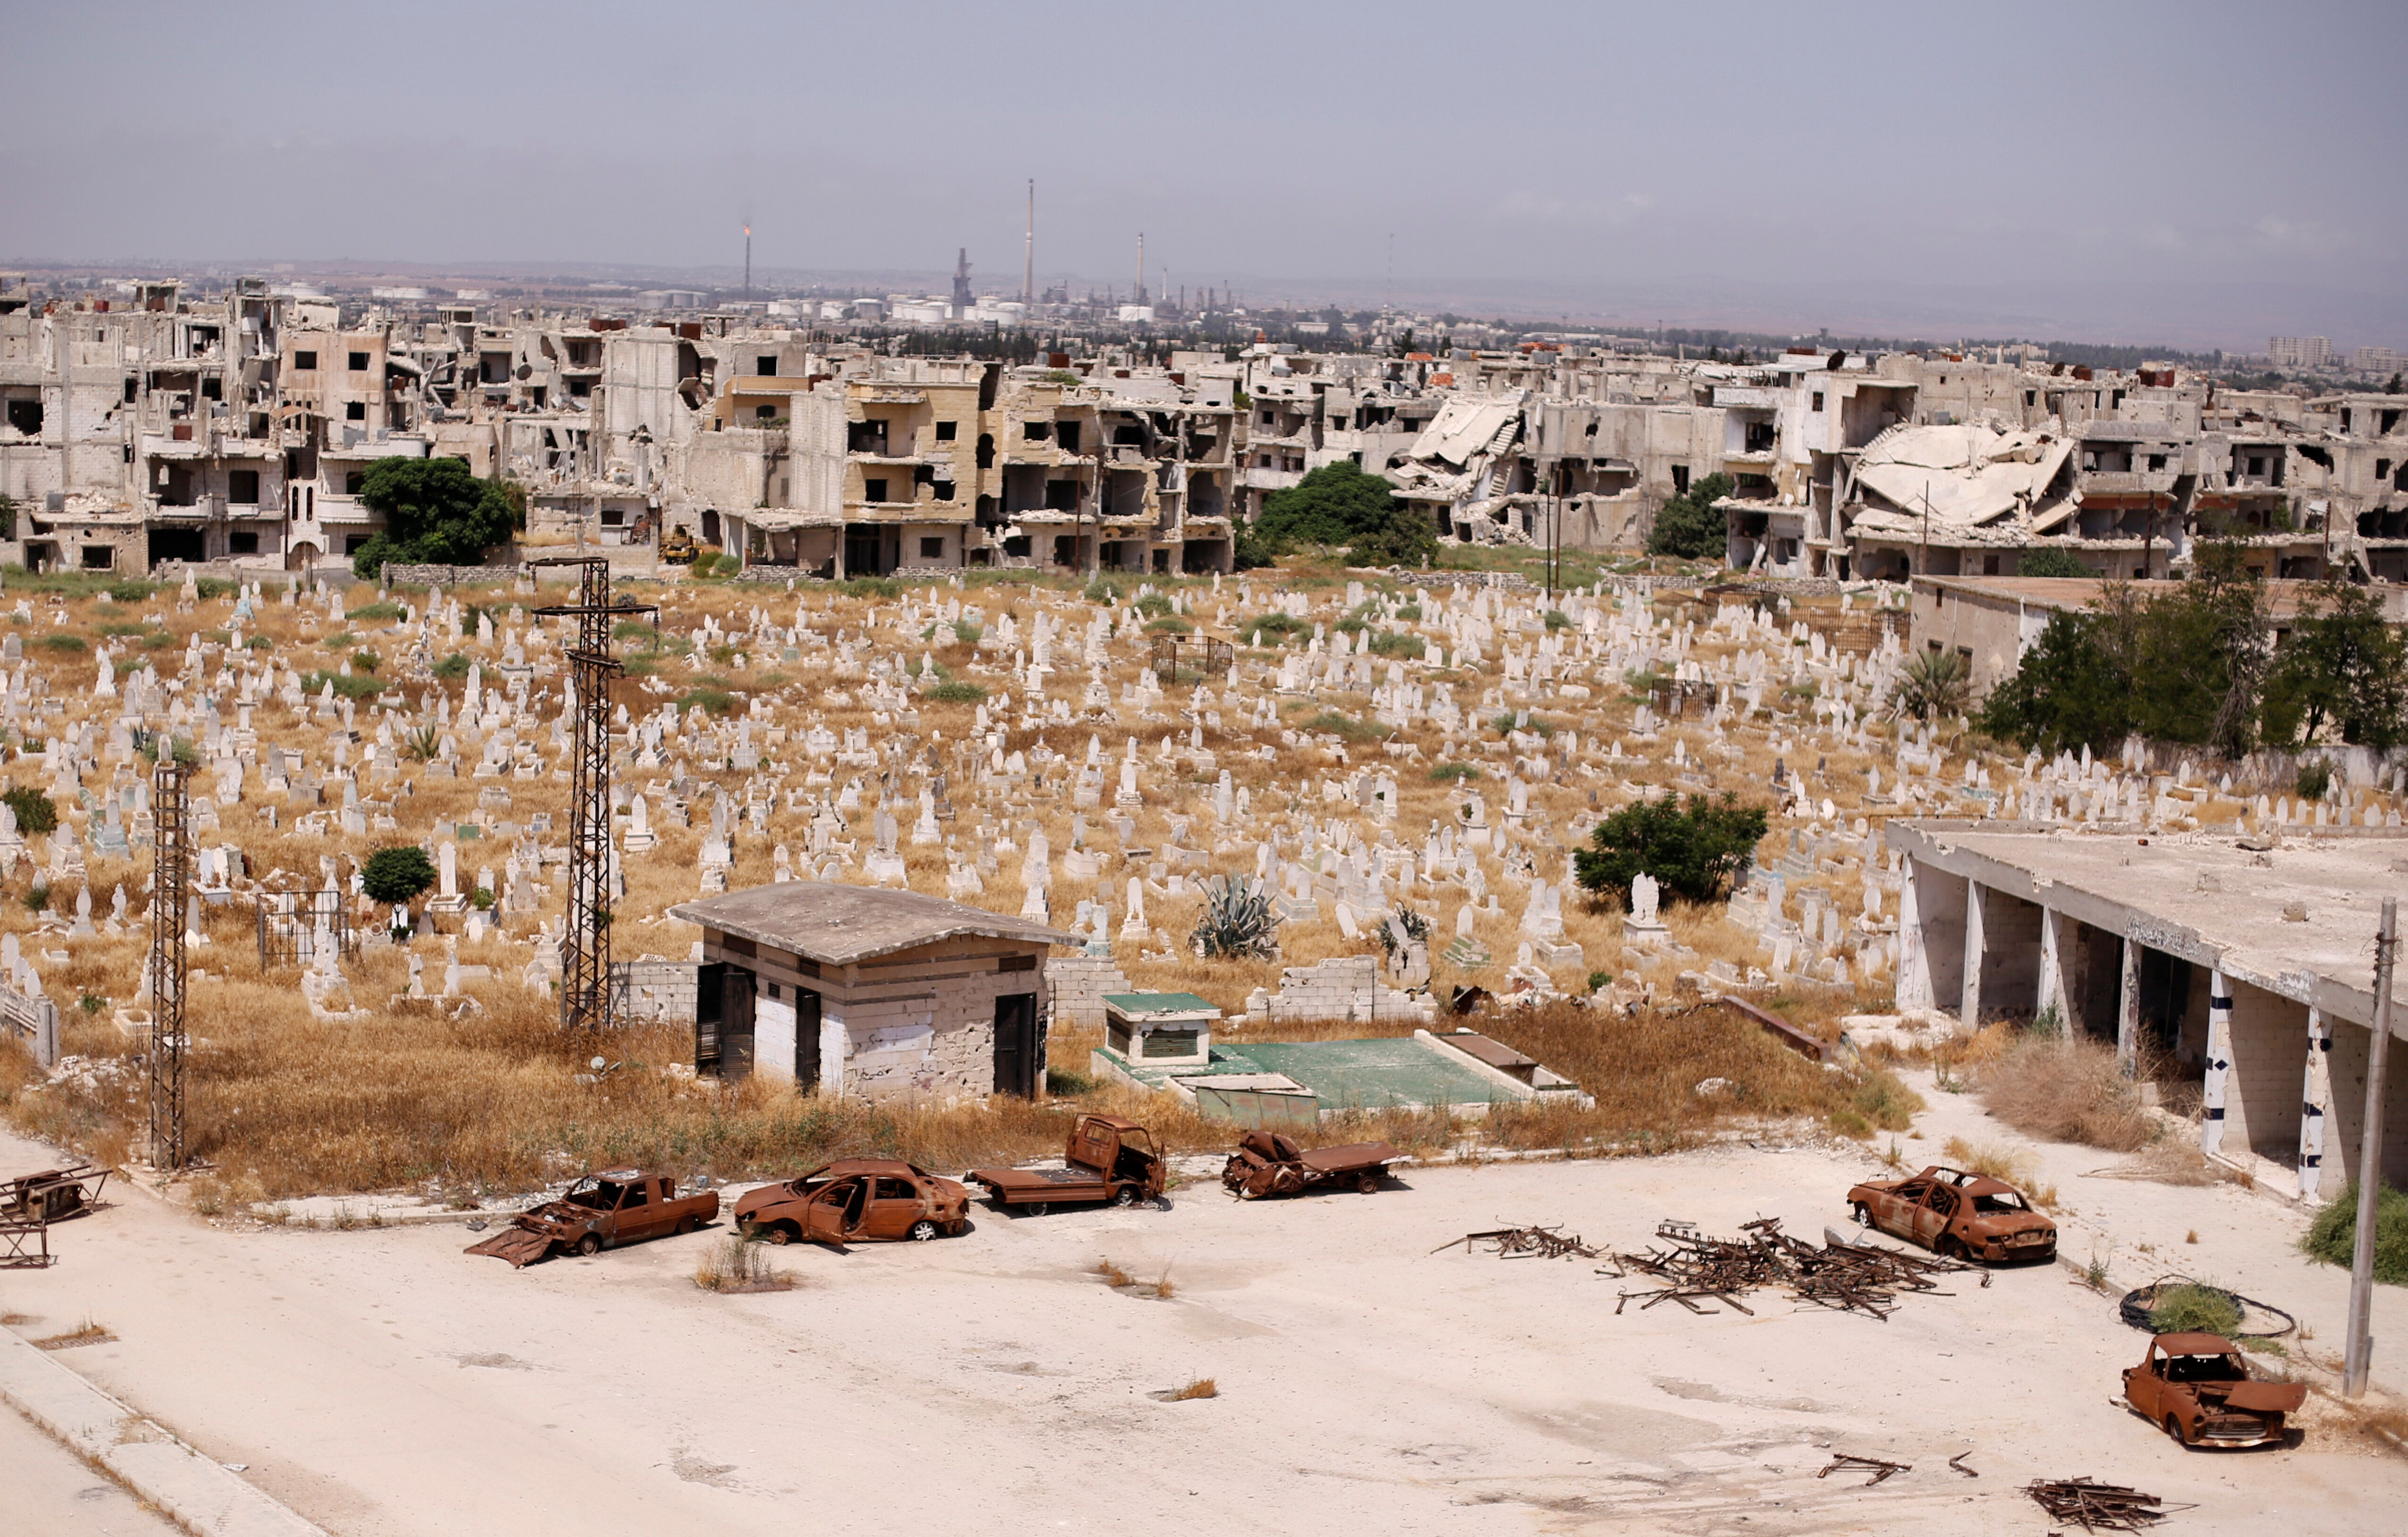 <strong>The families left the Syrian city of Homs, which has been a key battleground in the conflict.</strong>